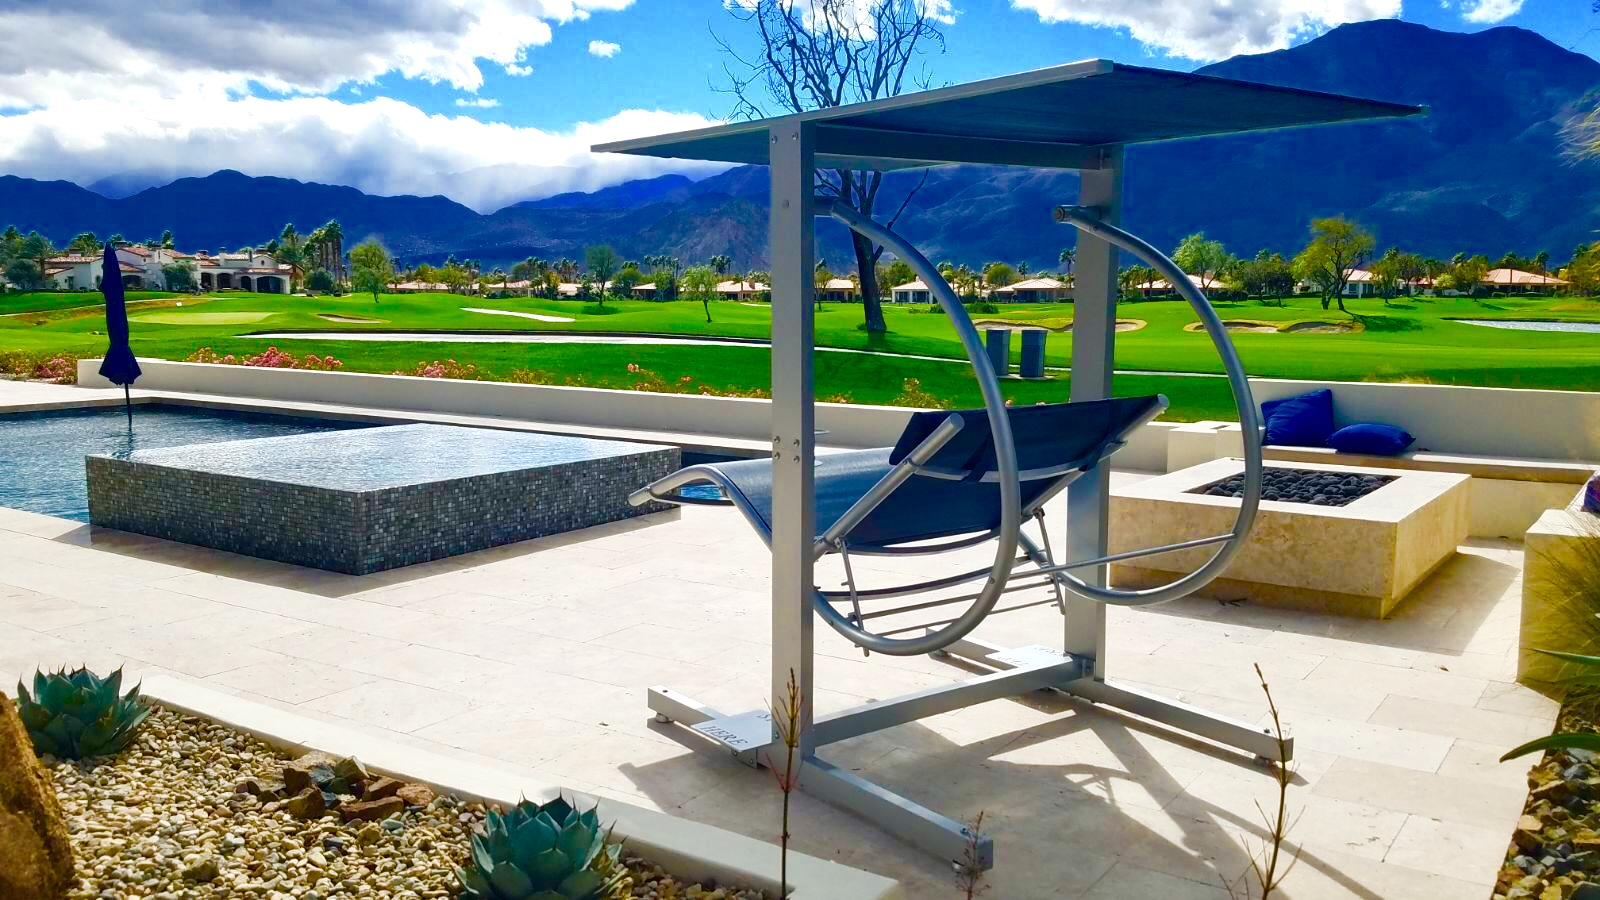 David Frank Furniture: Luxury Swing Company - Blue and Silver Swing in the Sun on Beautiful Patio